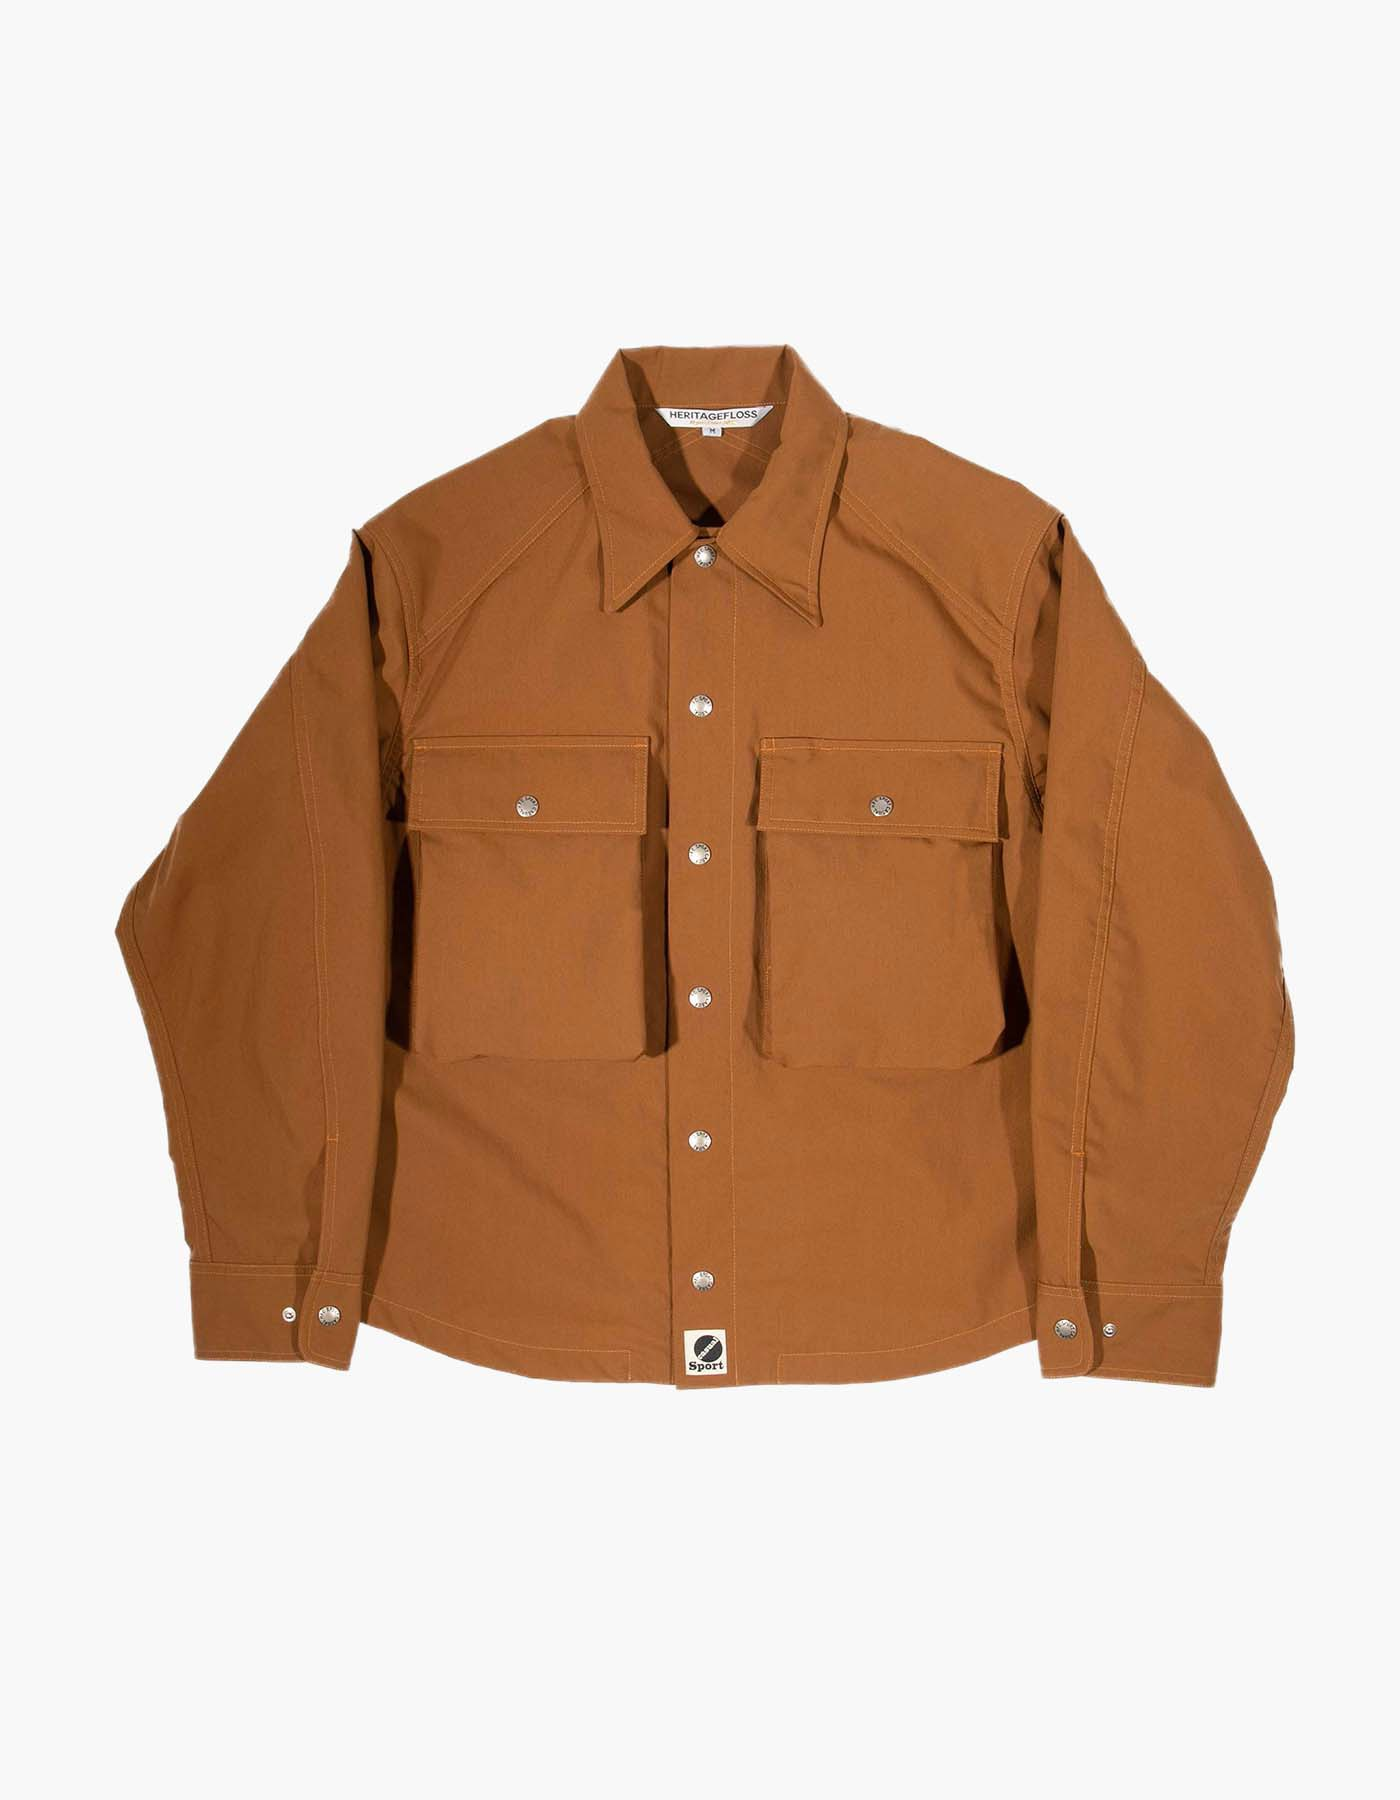 NYLON FIELD SHIRT / CAMEL